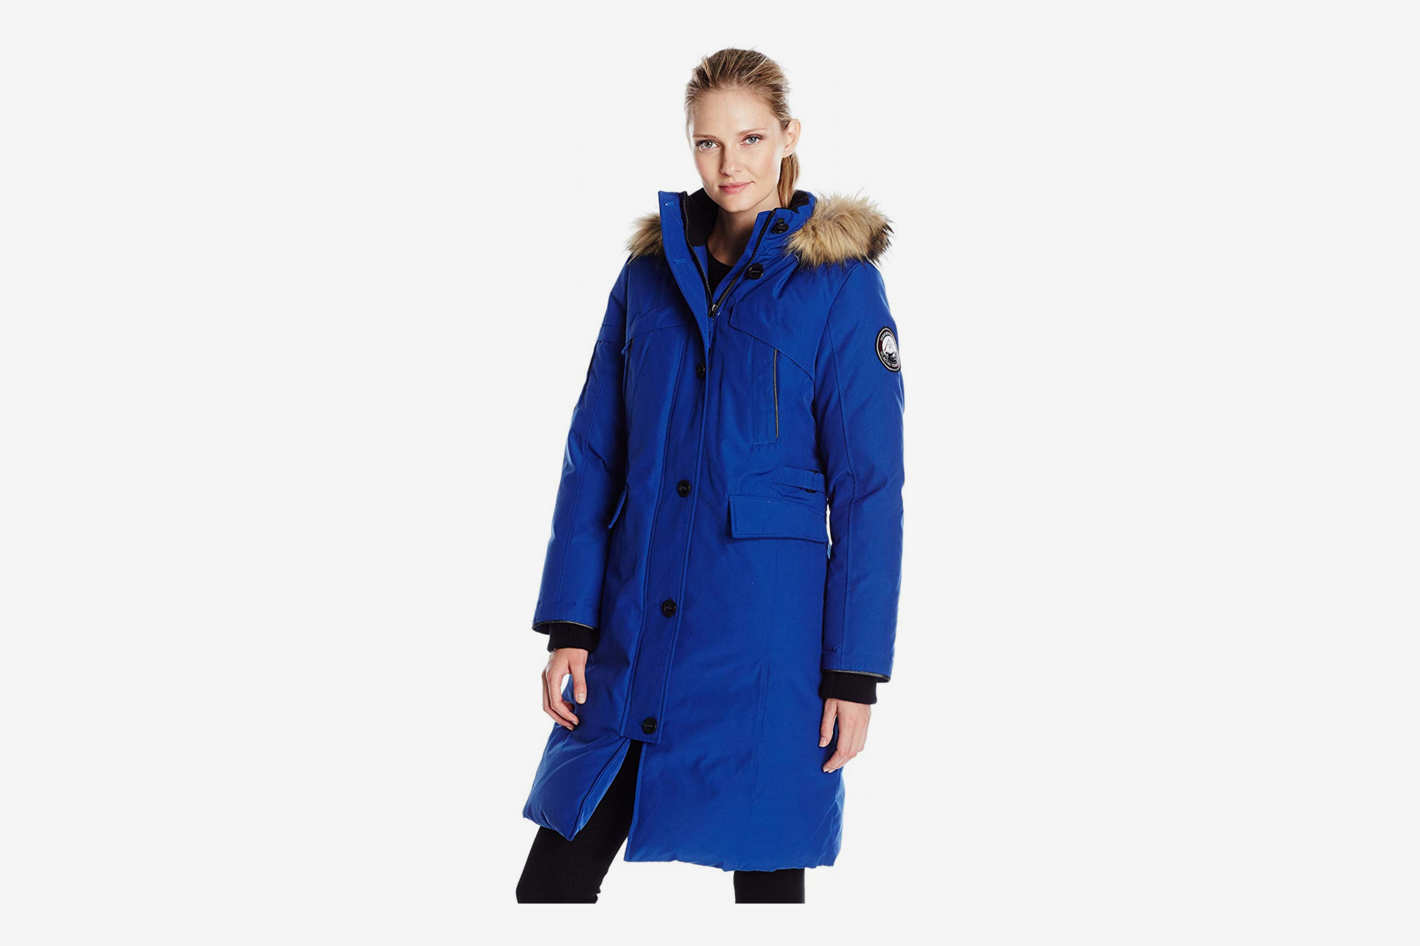 fa0019a912d9 Alpinetek Women's Long Down Parka